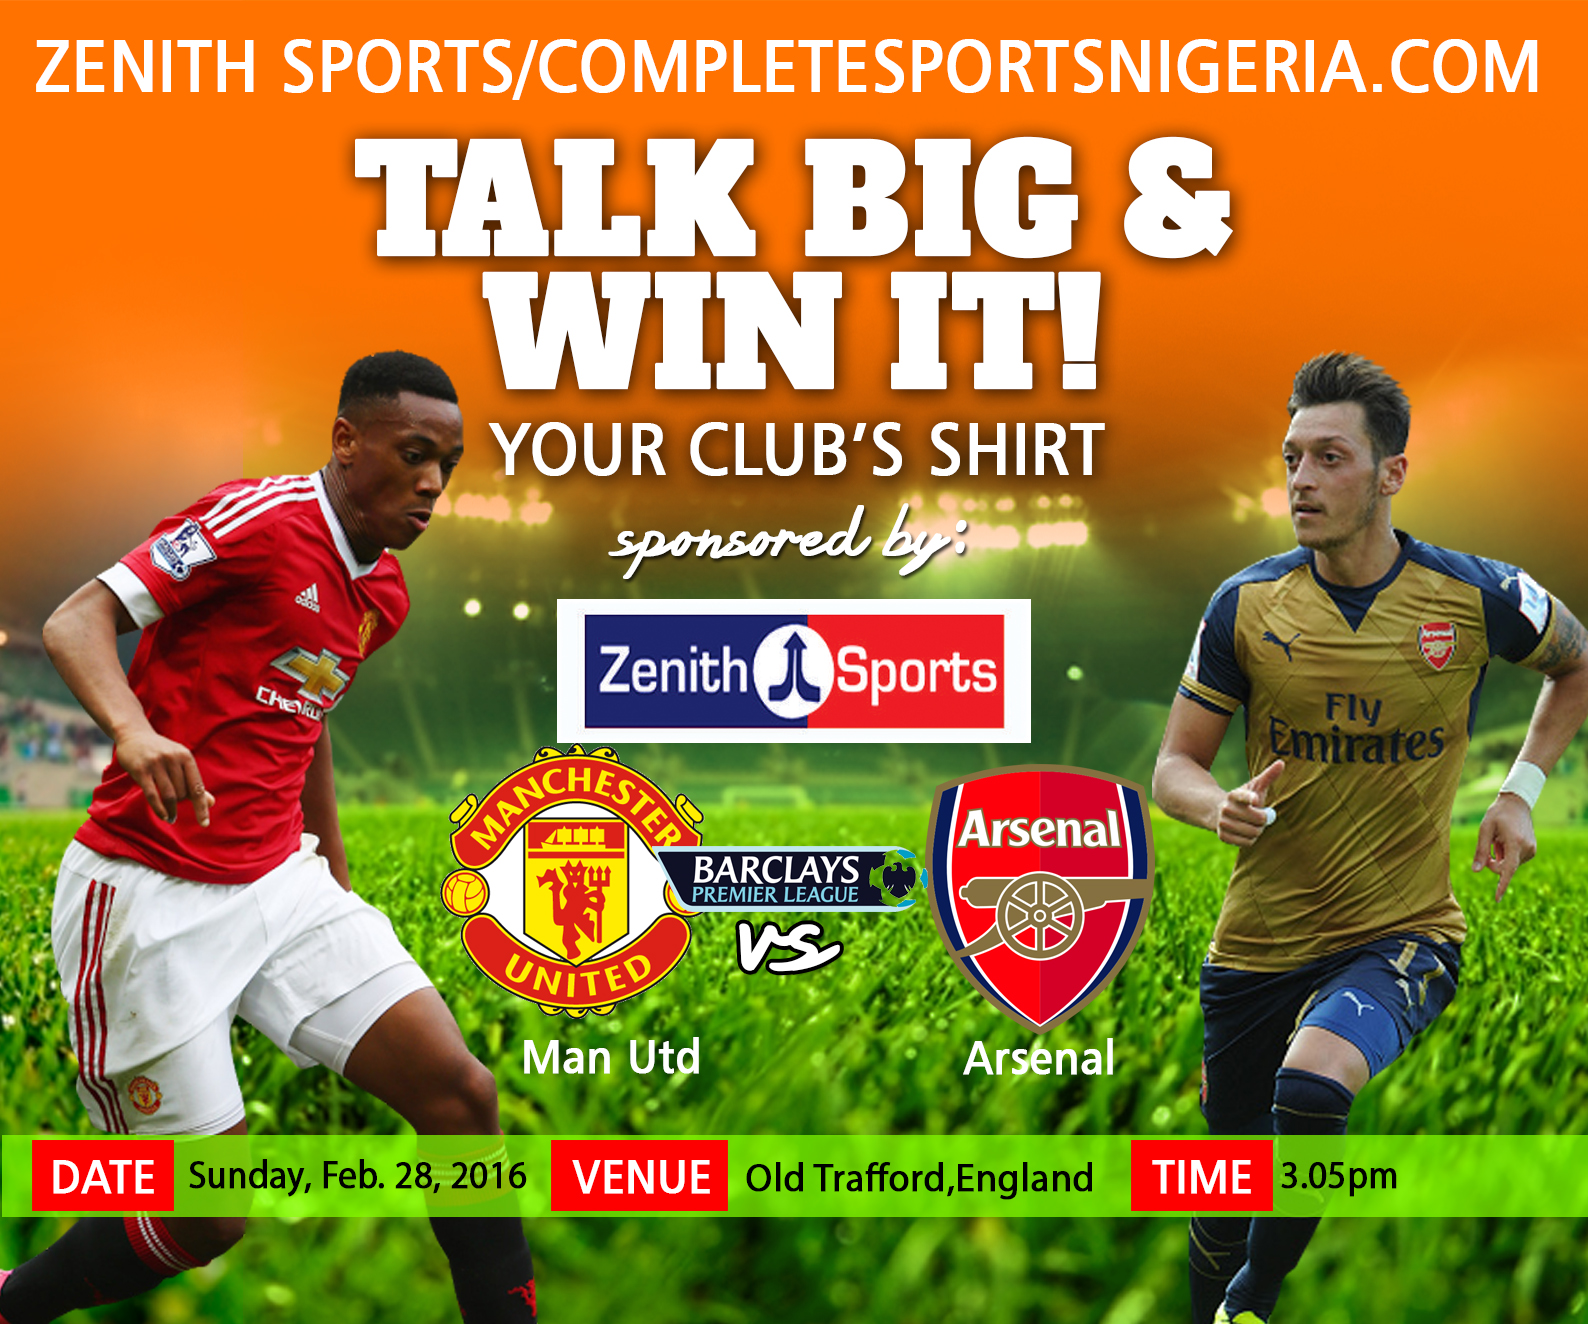 The Winners: Manchester United Vs Arsenal, Talk Big & Win It!